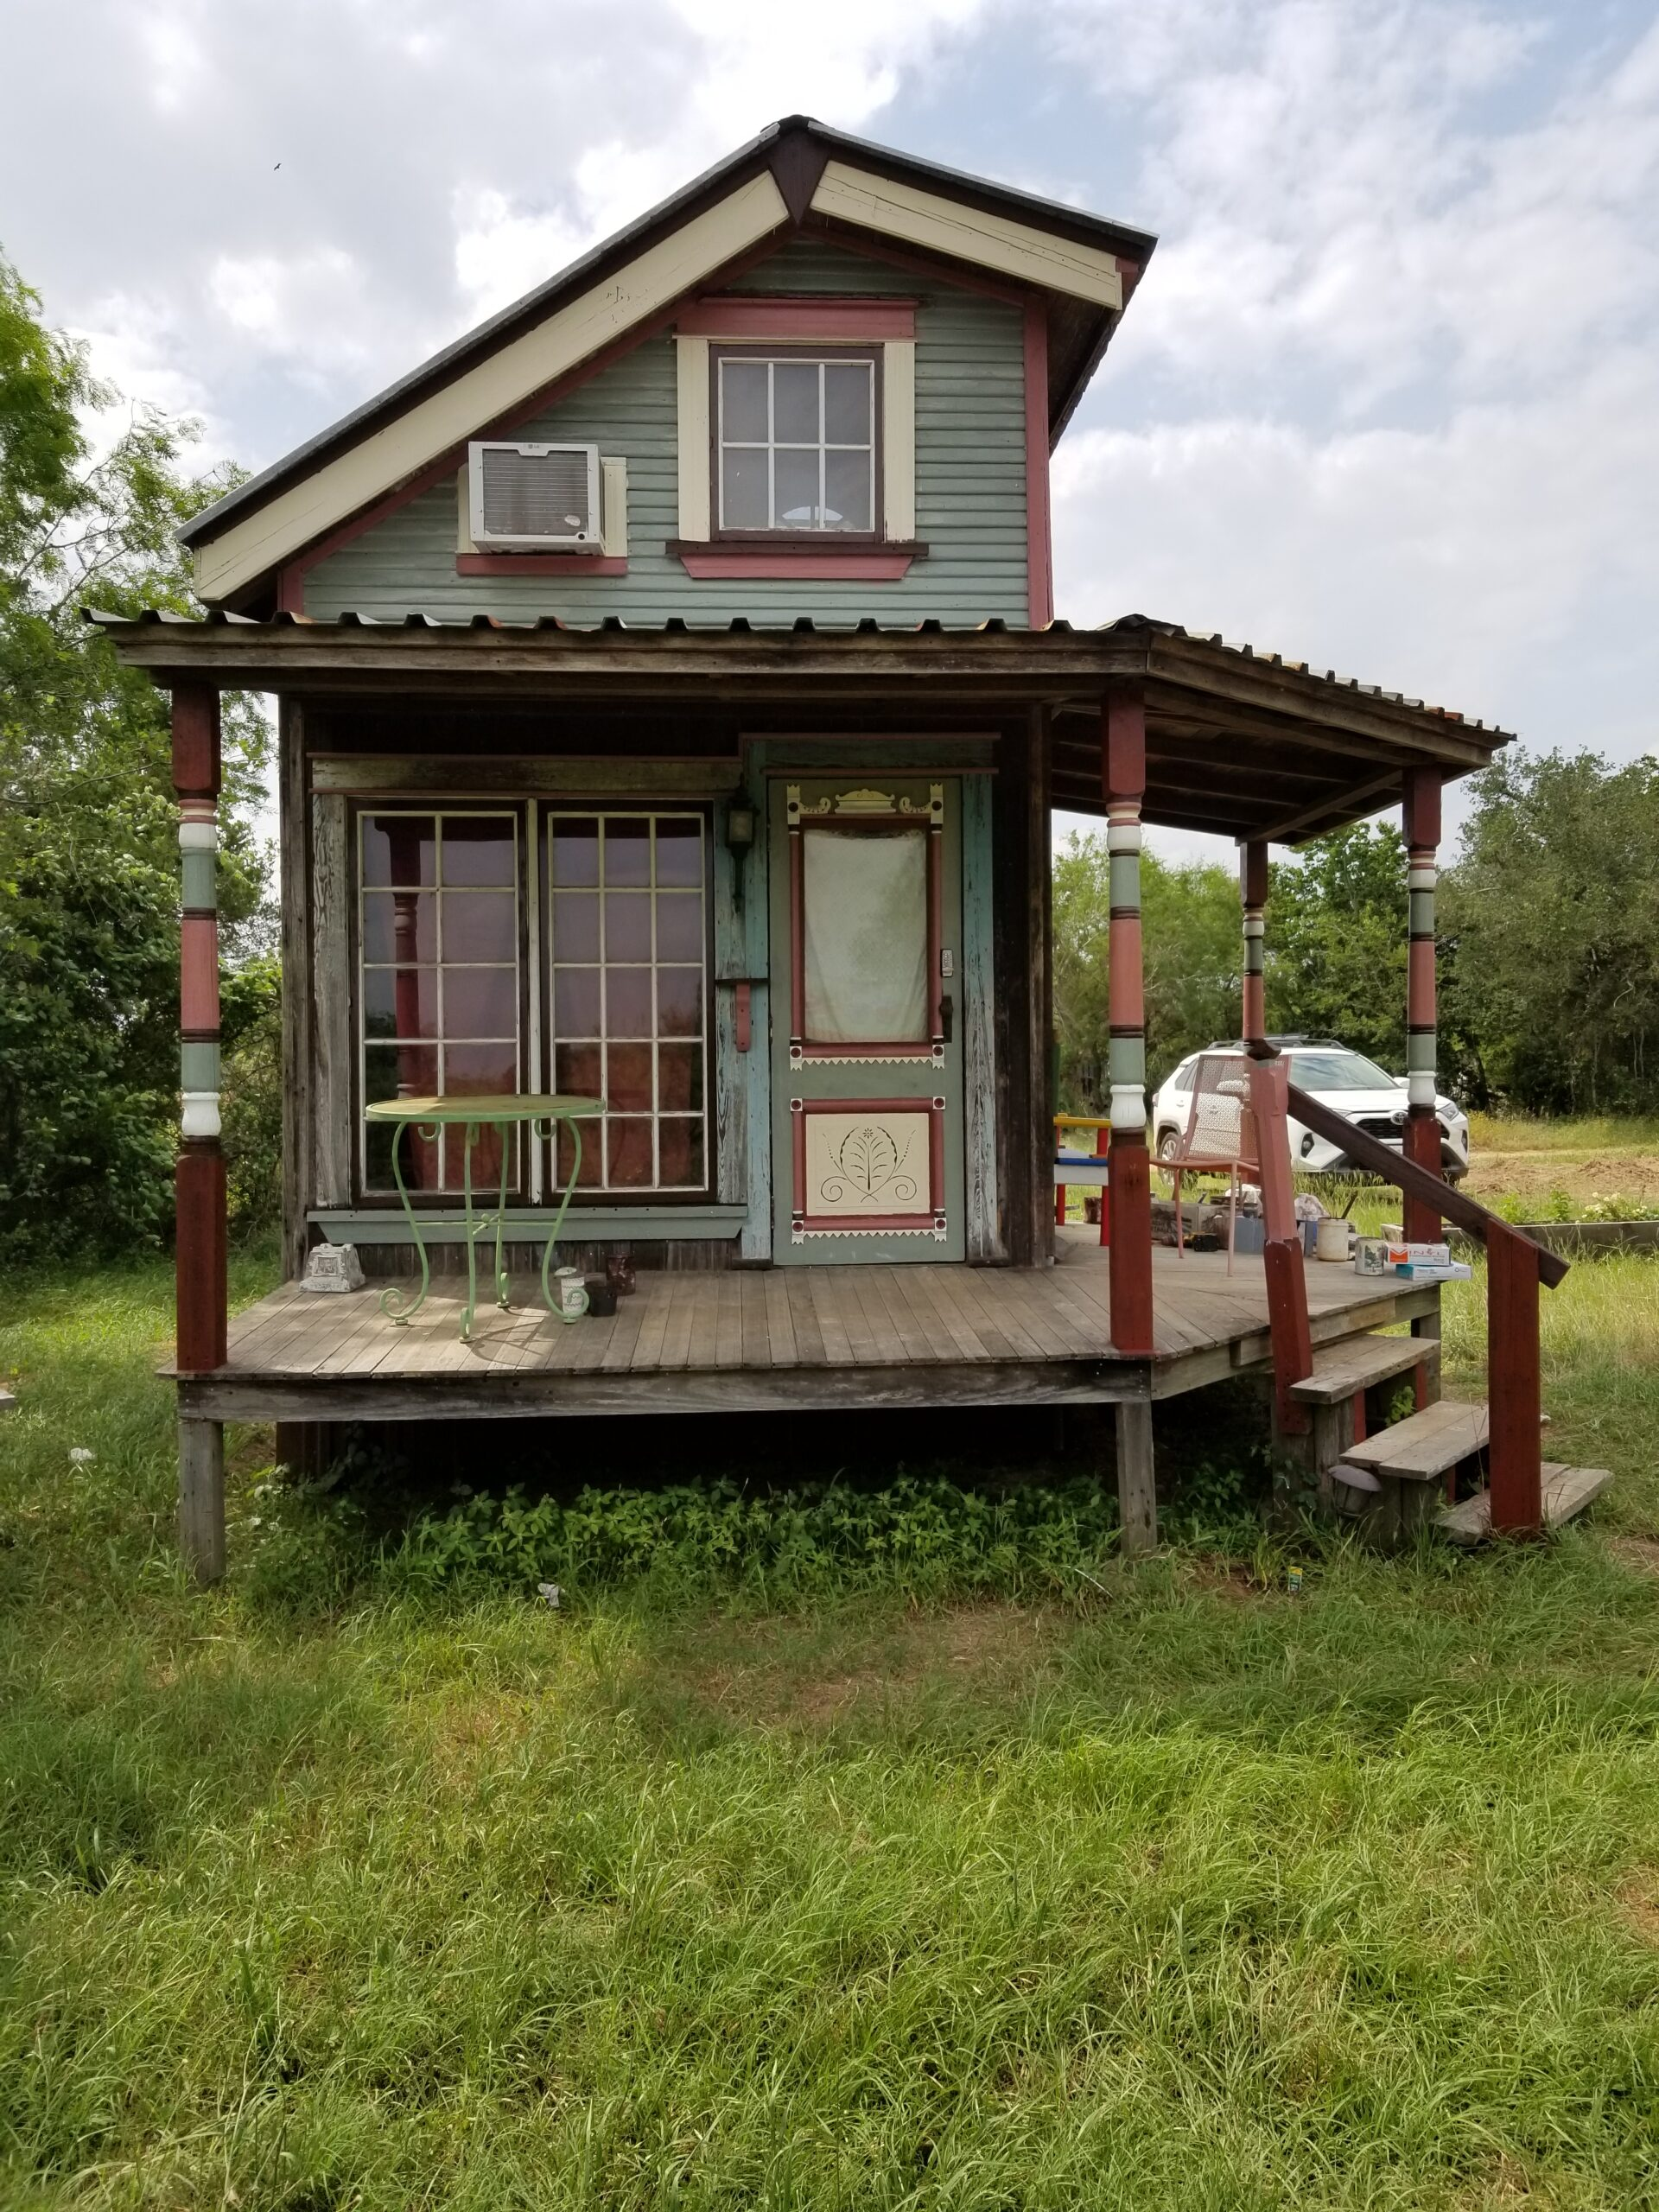 If Your Tiny House Dream Came True, Where Would You Put It?